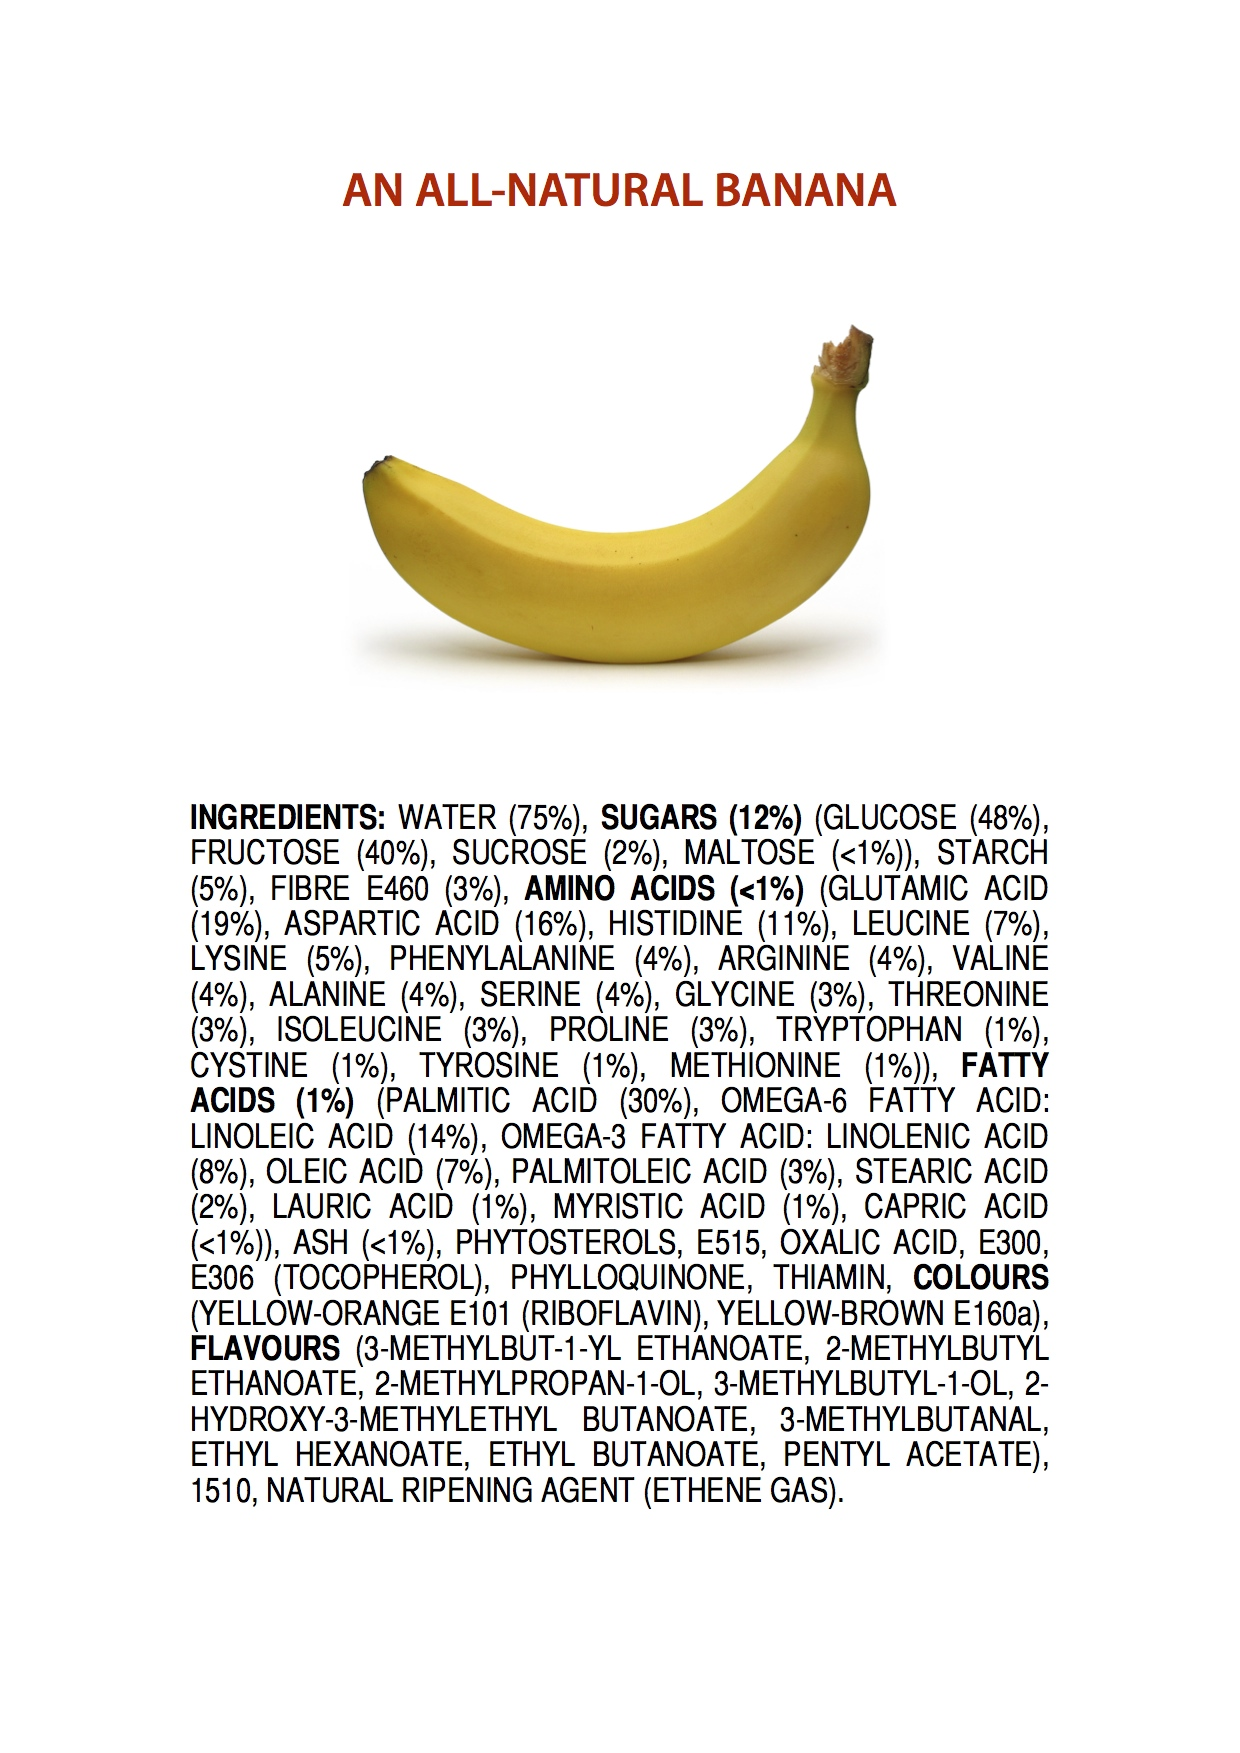 Examples Of All Natural Foods